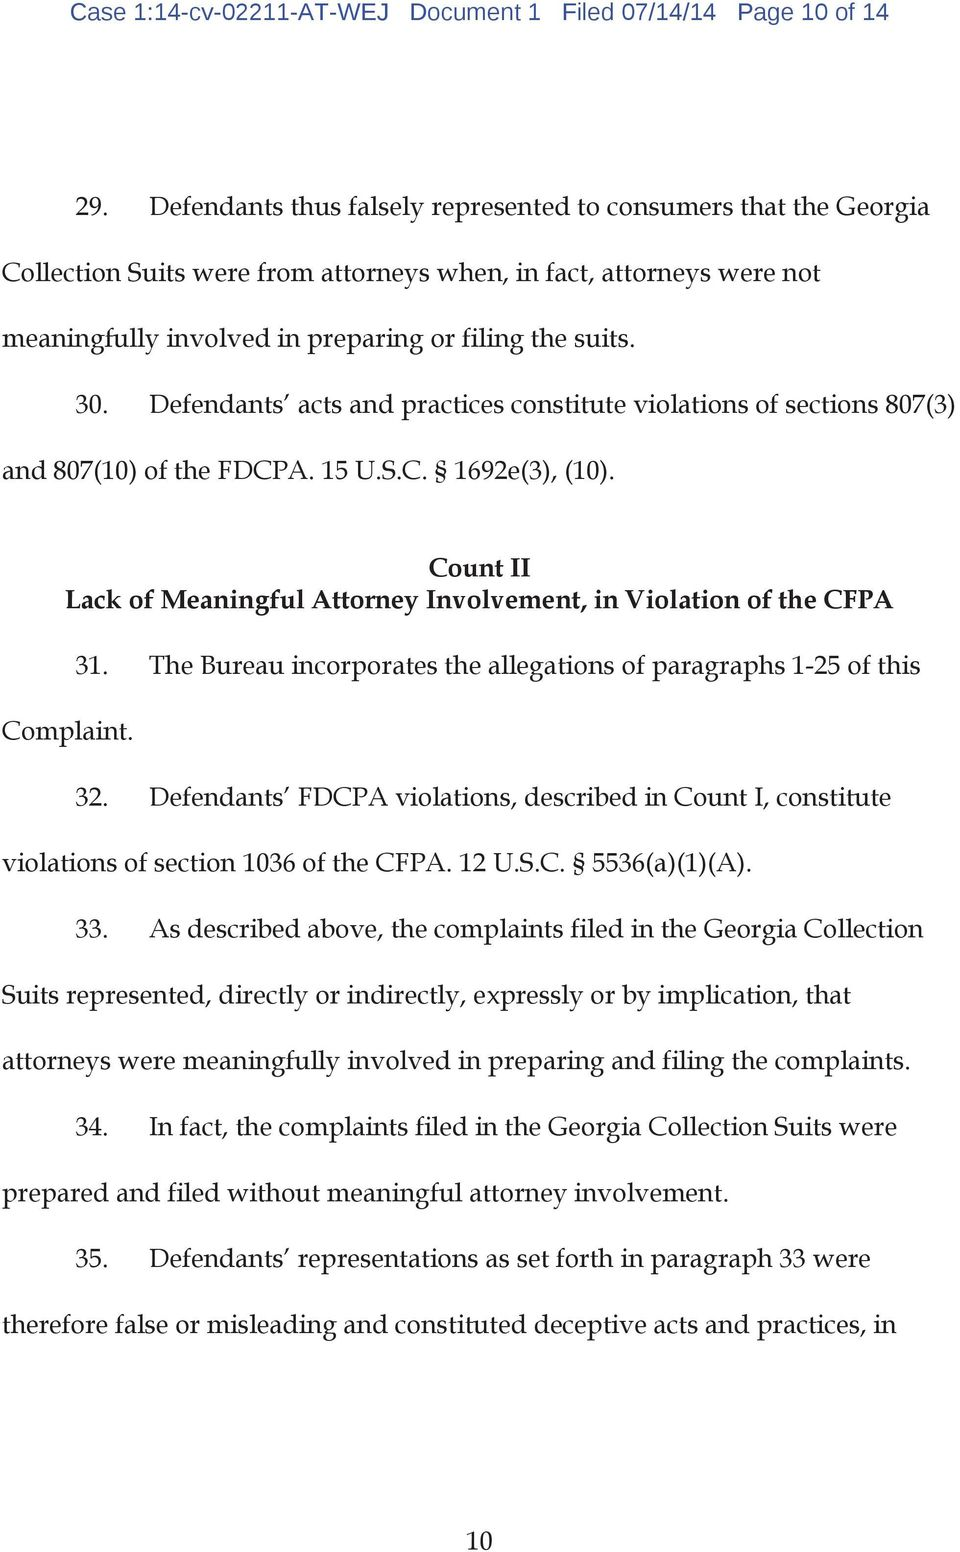 Defendants acts and practices constitute violations of sections 807(3) and 807(10) of the FDCPA. 15 U.S.C. 1692e(3), (10).